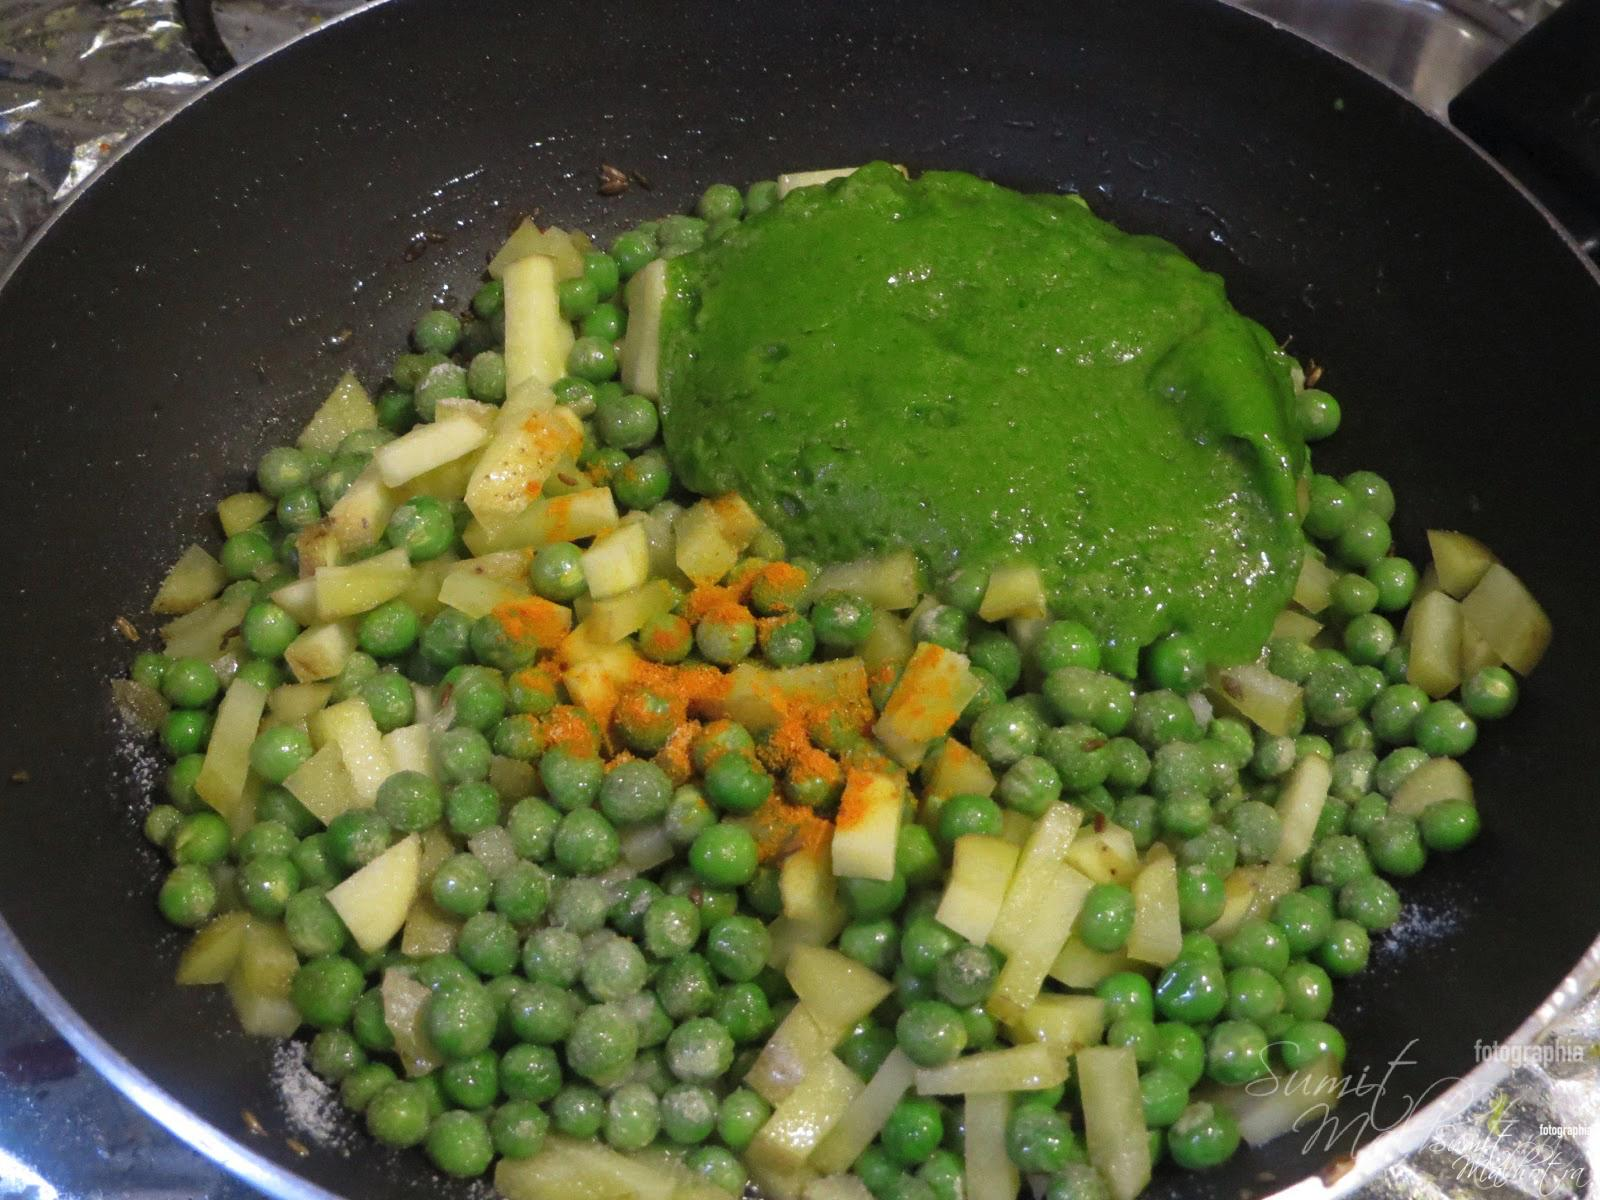 Now add the green paste from step 1, turmeric powder and salt. Mix it well. Cover it and let it cook for 2-3 min.